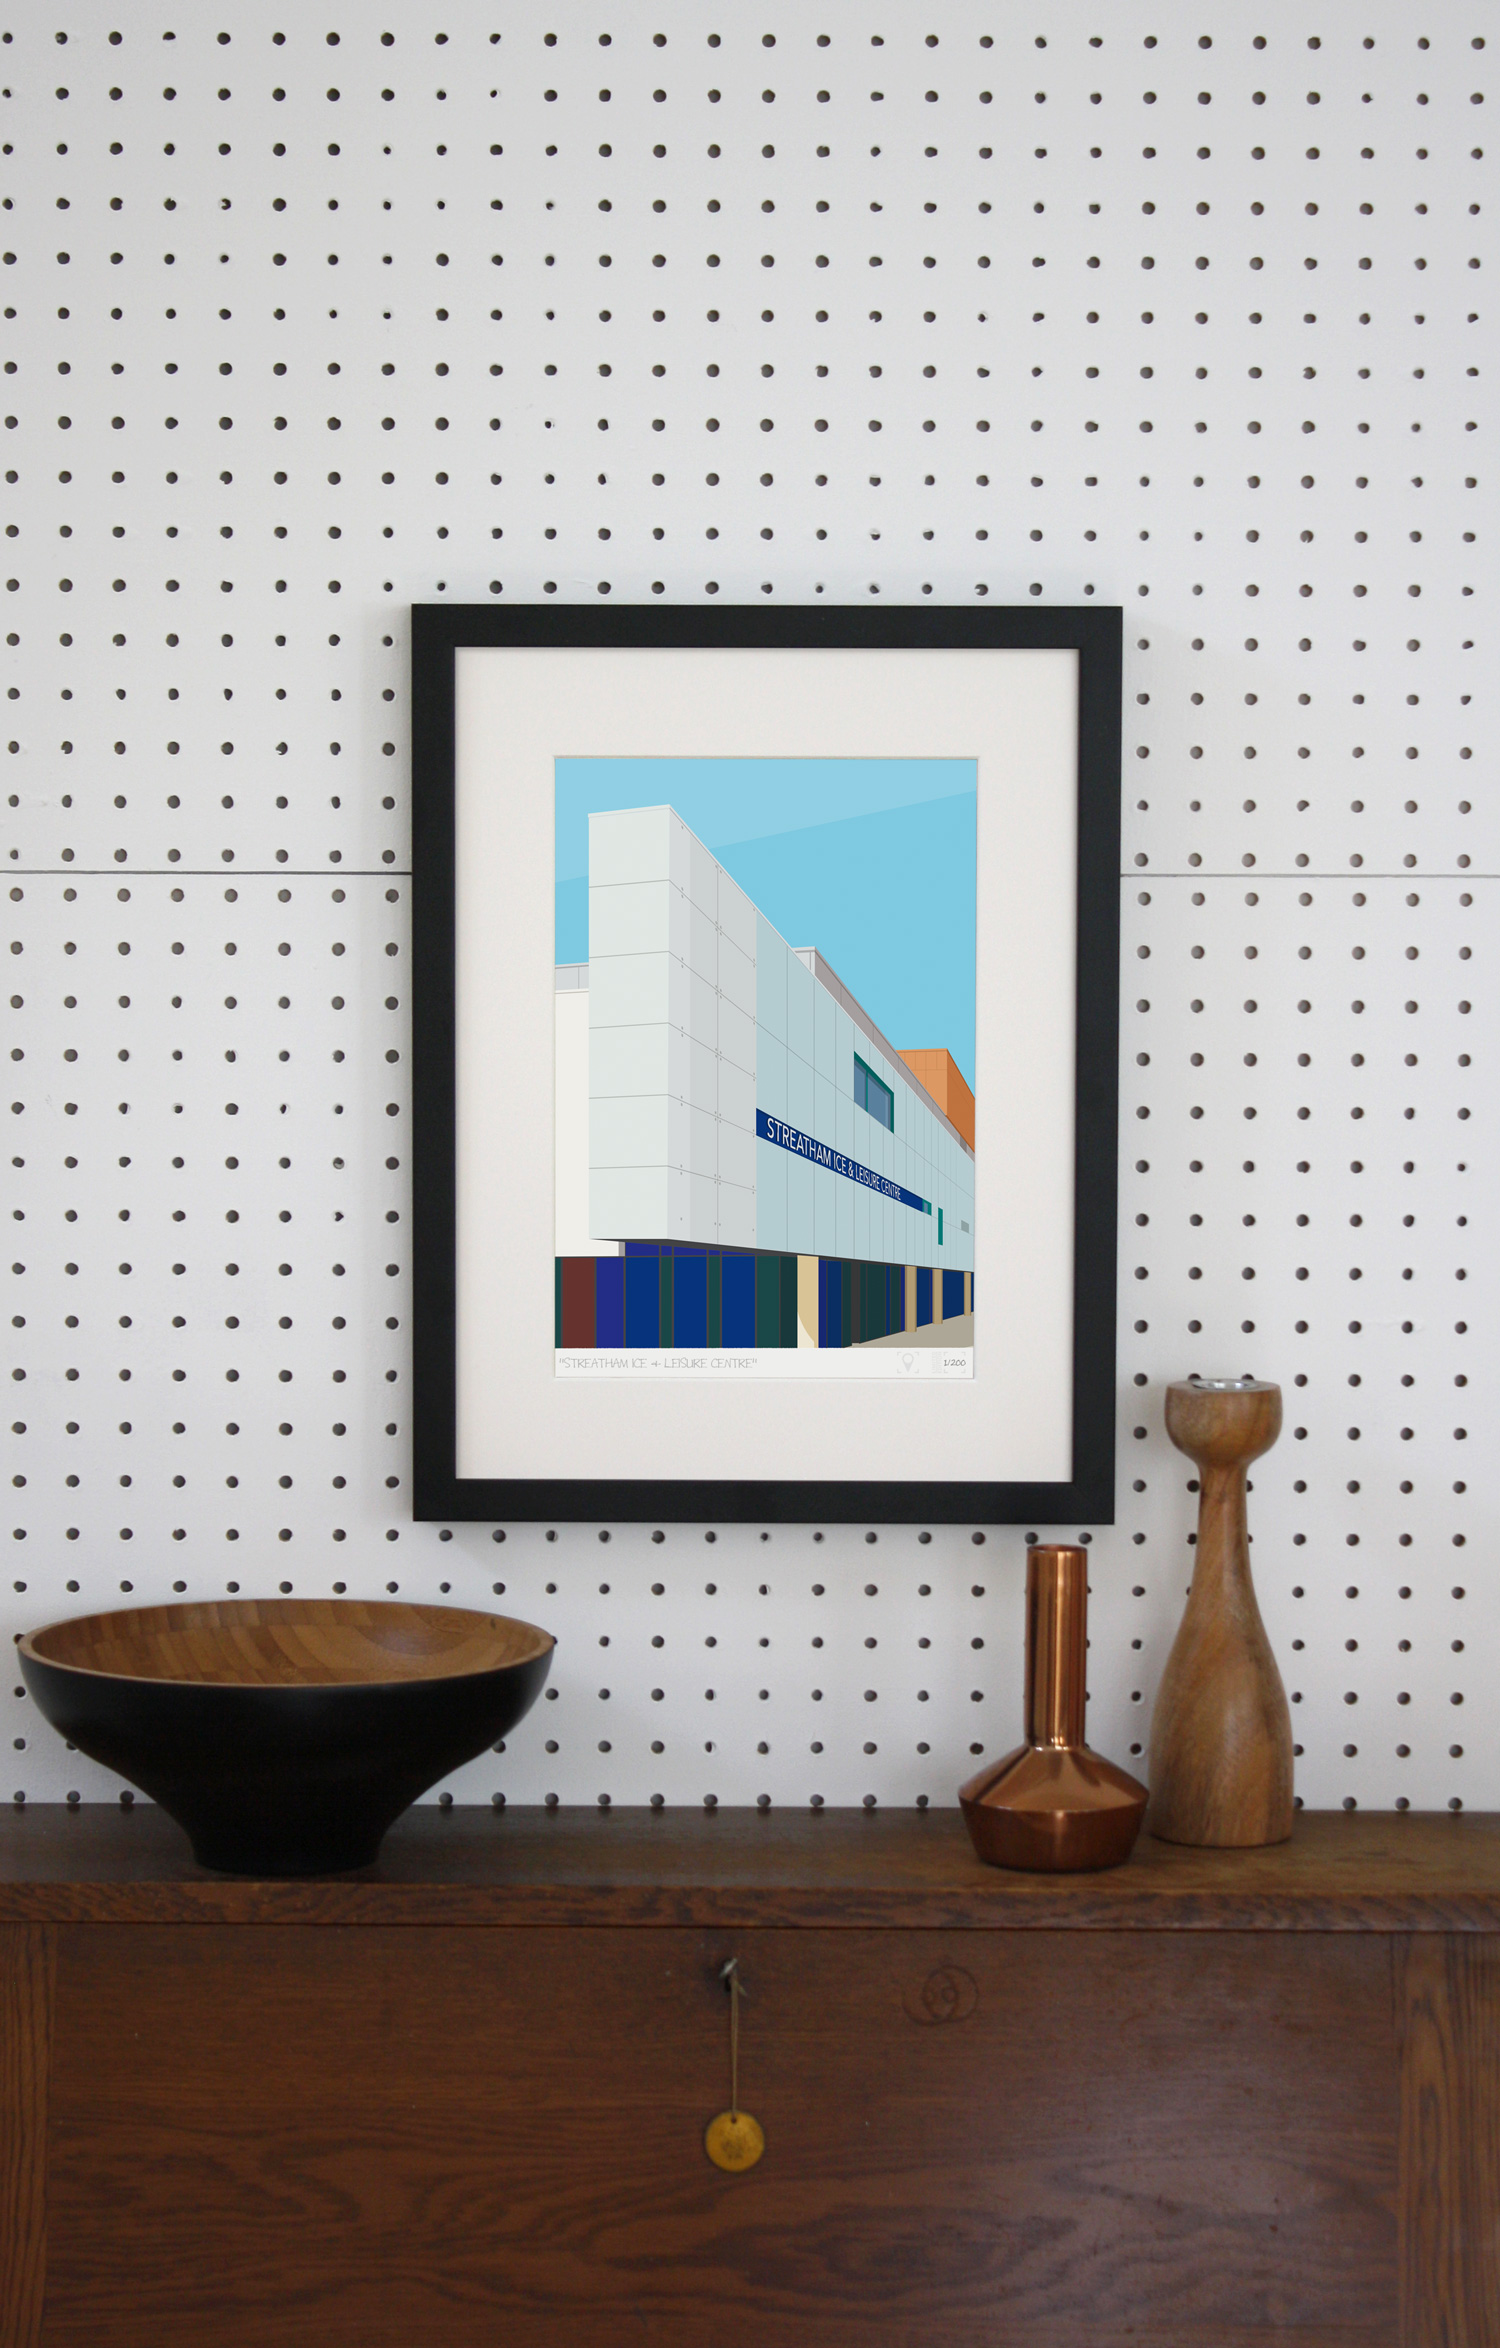 Place in Print Streatham Ice and Leisure Centre Art Print Lifestyle